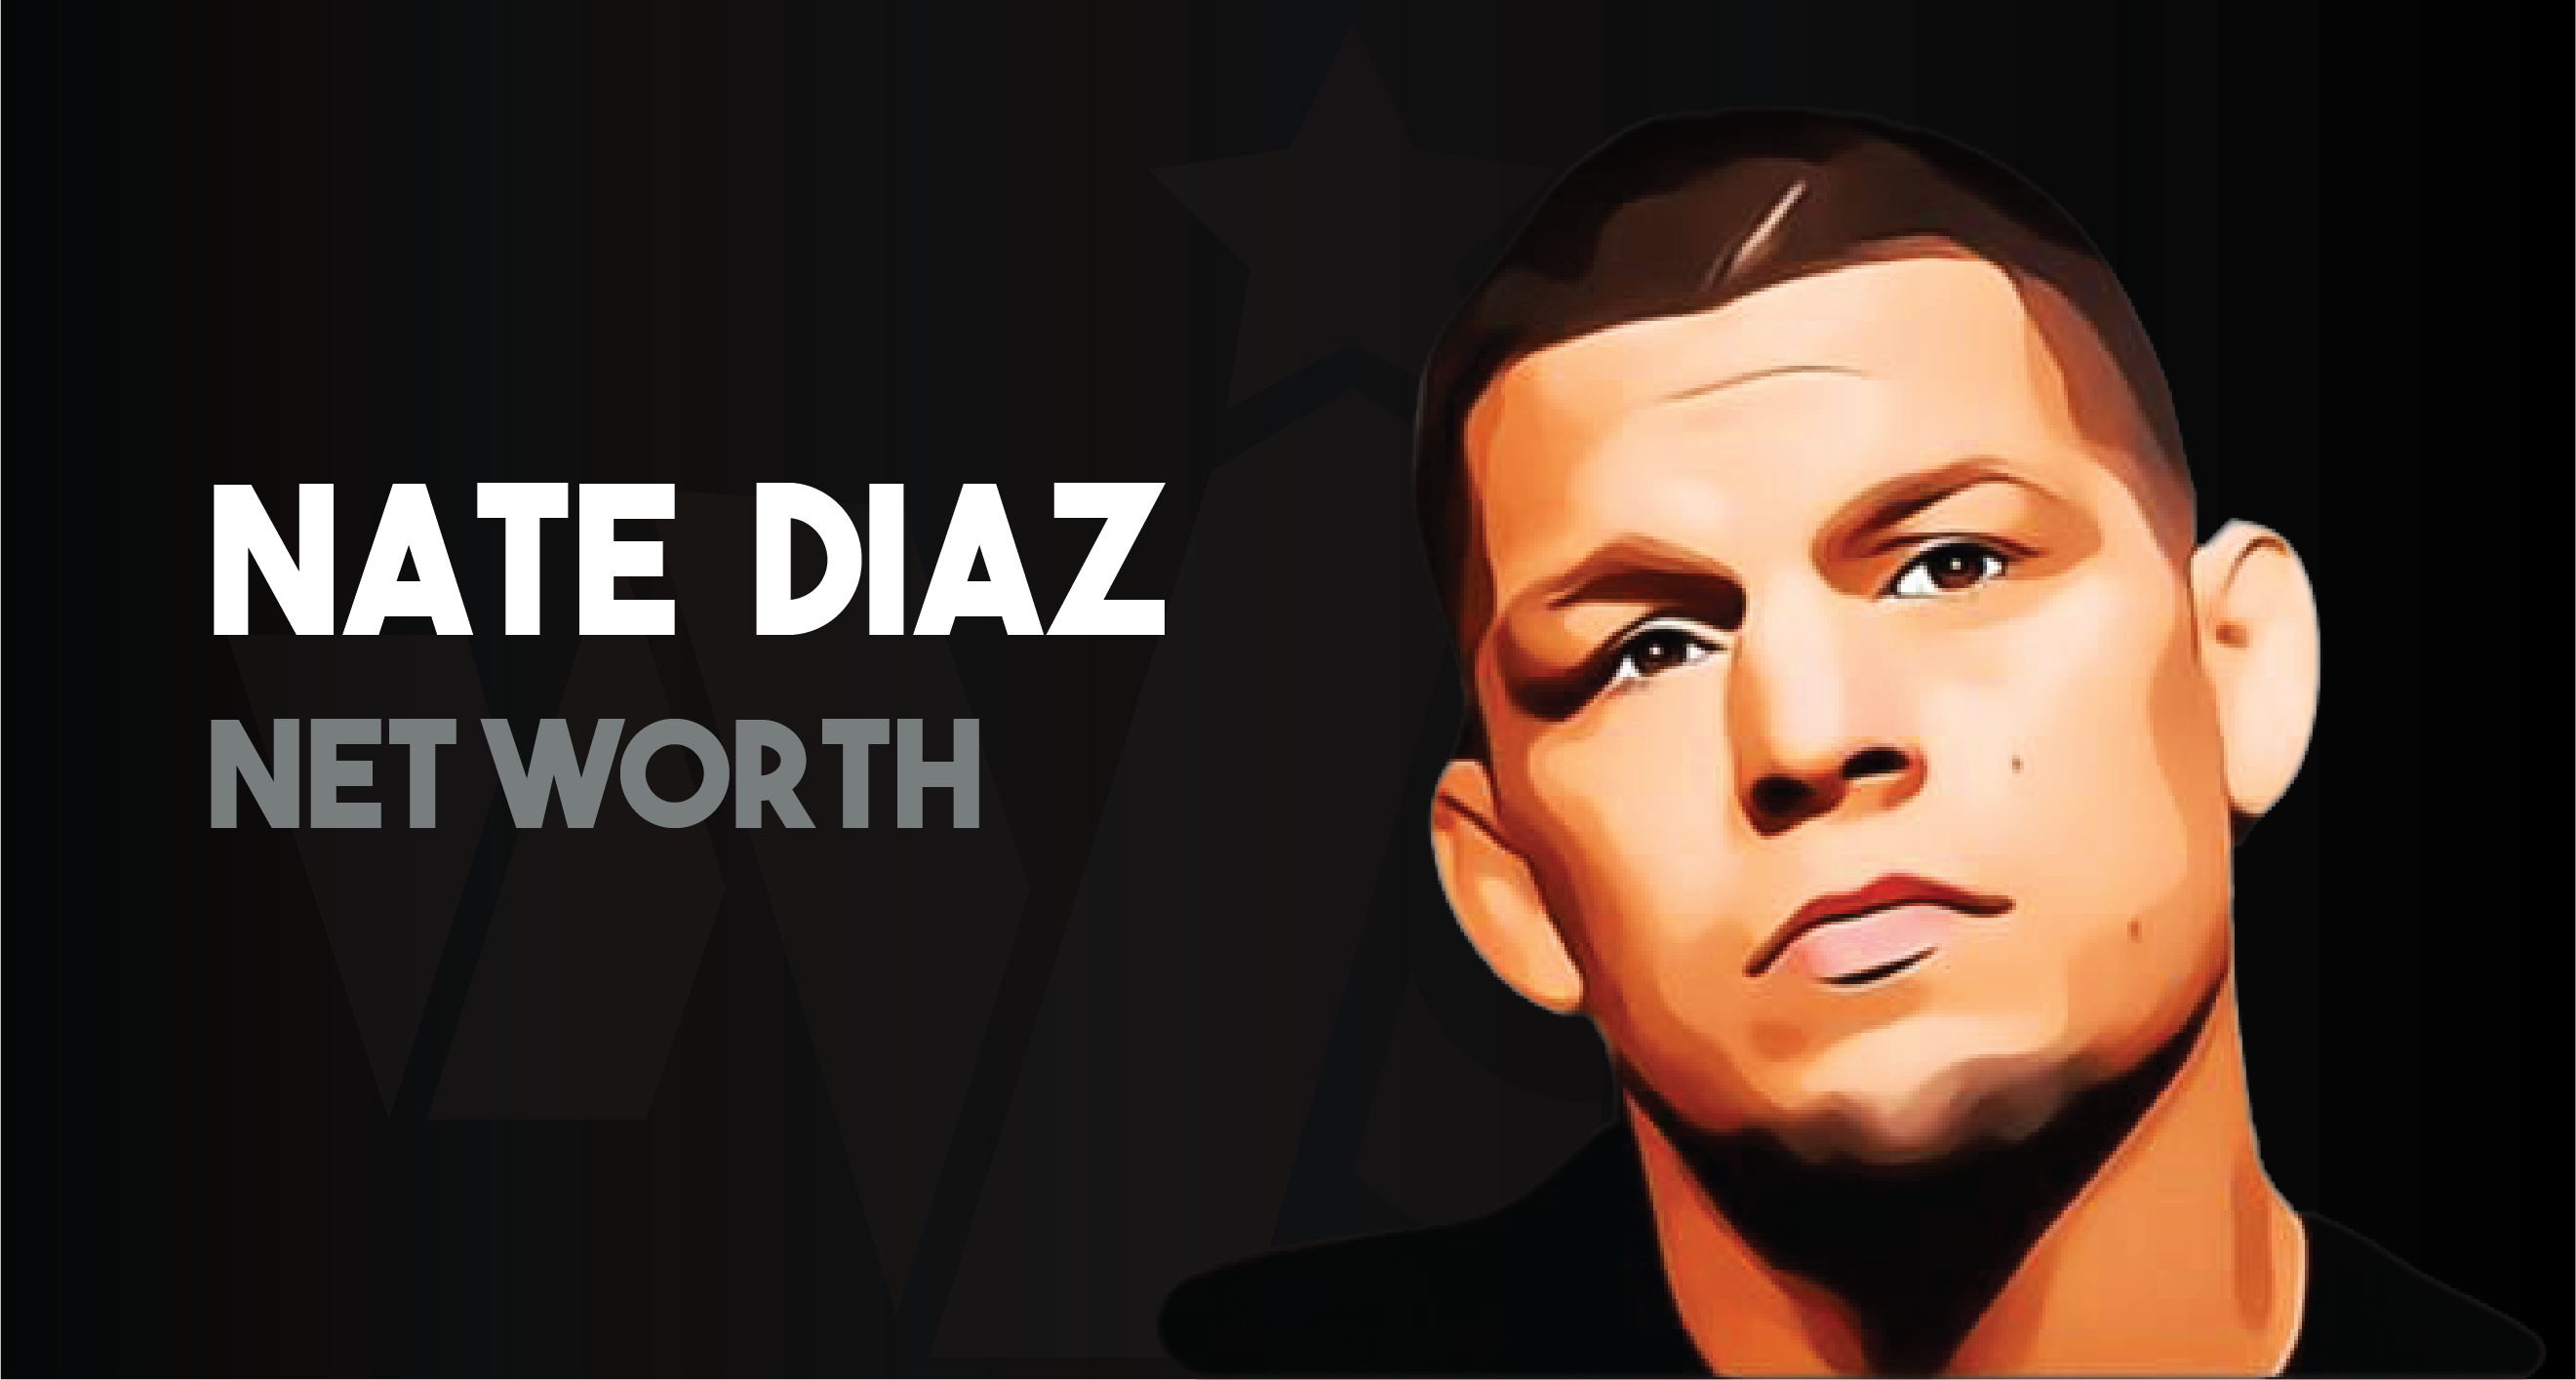 Nate Diaz_Net Worth